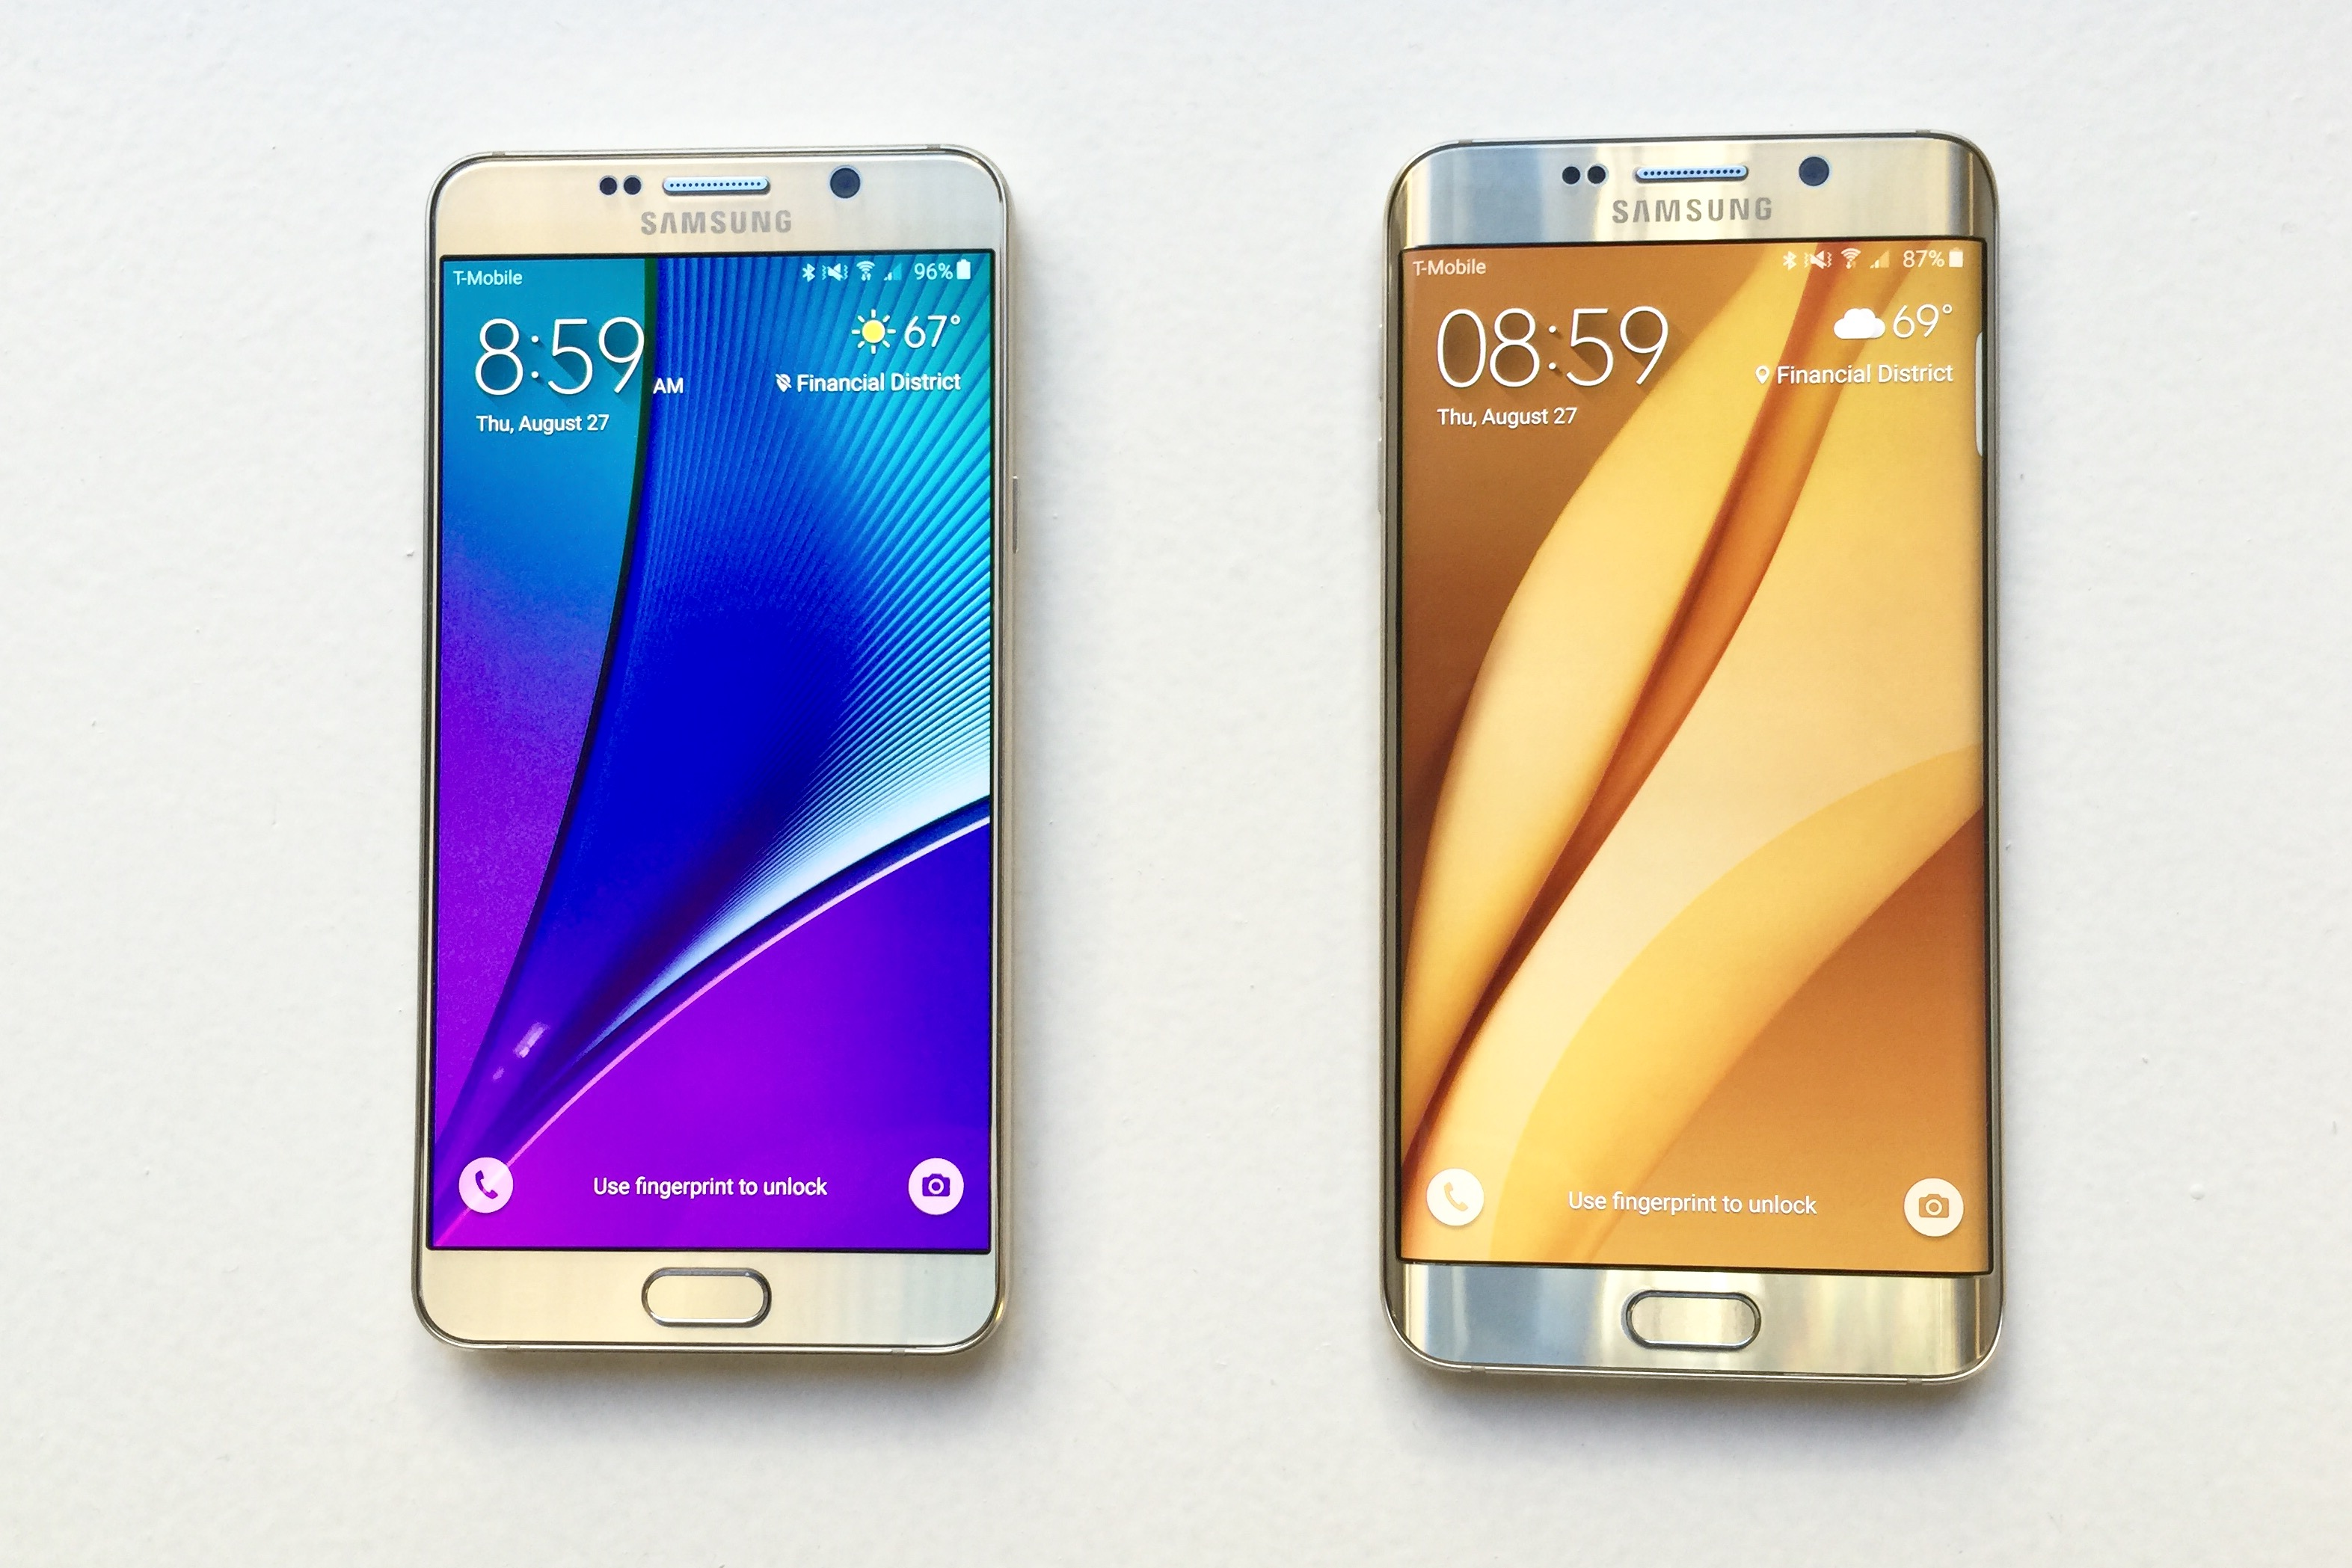 Gold platinum galaxy note 5 now available from t mobile android - Galaxy Note 5 Vs Galaxy S6 Edge Plus Review Do You Choose Stylus Or Curved Display